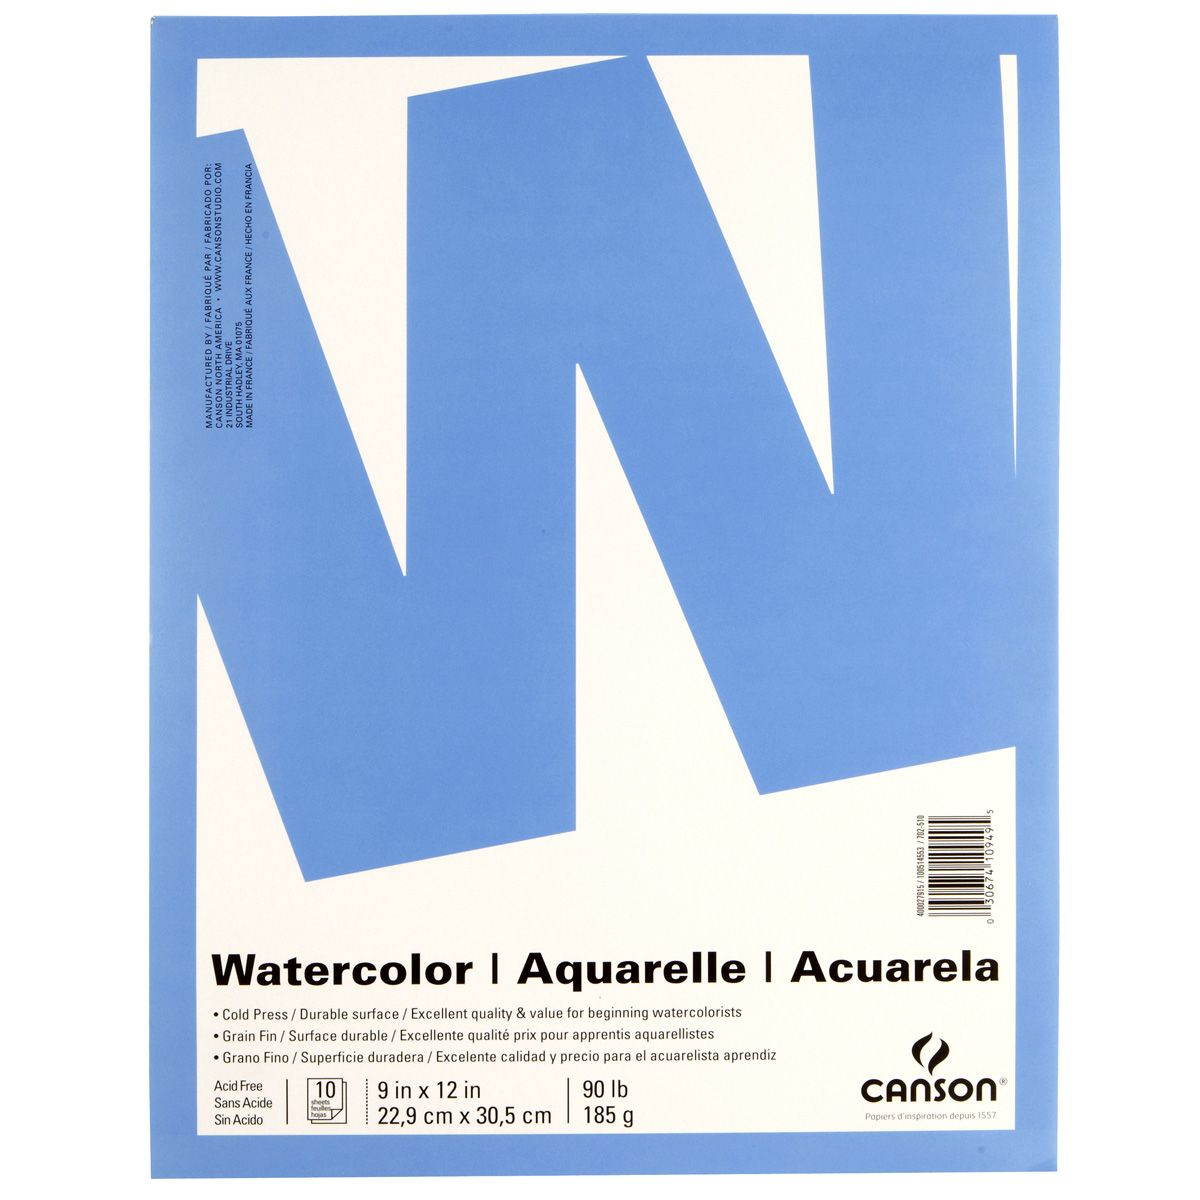 Canson Value Watercolor Pad Watercolor Paper Watercolor Paper